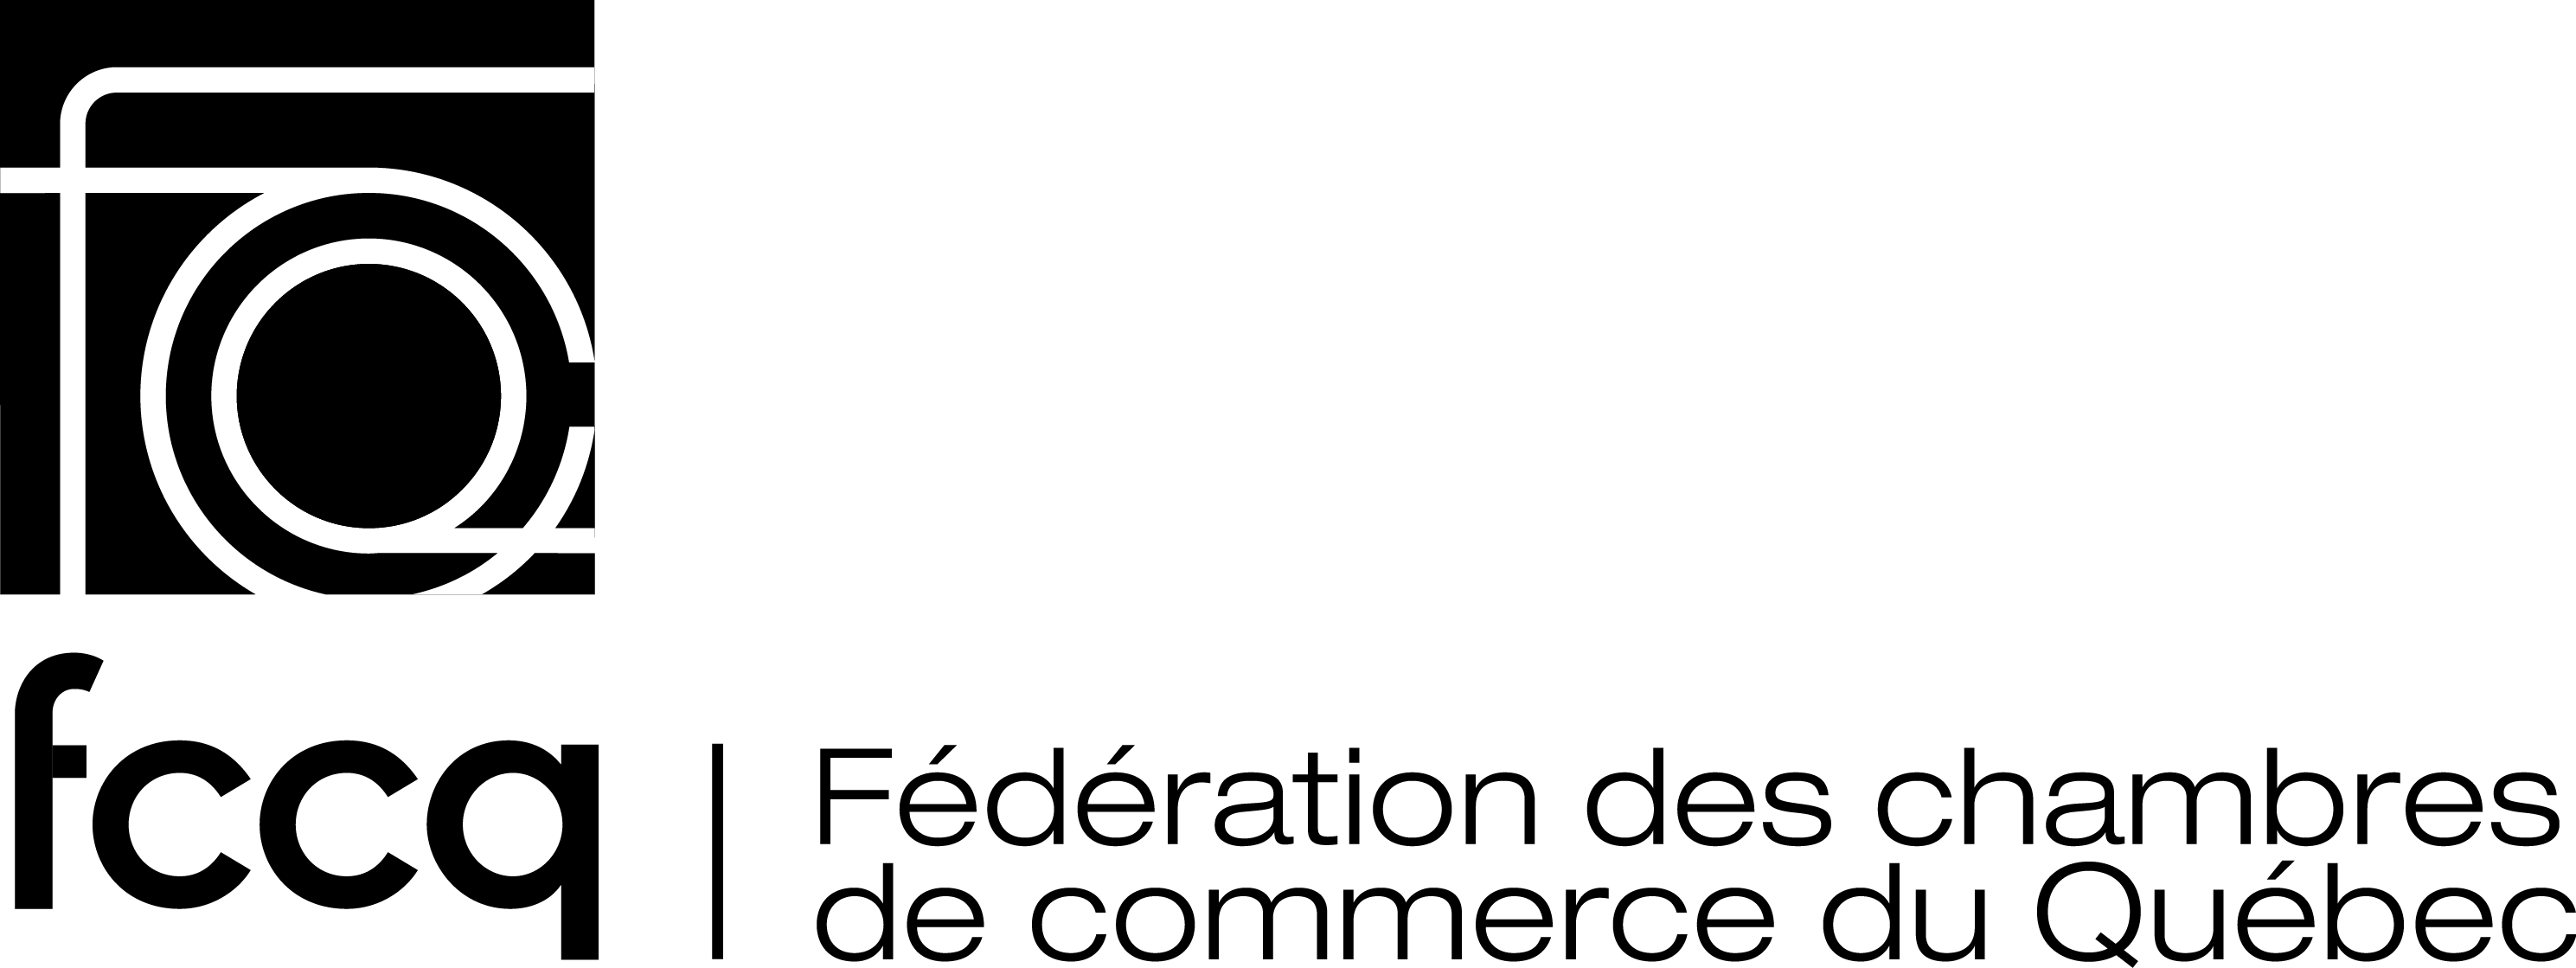 Logo fccq signature noir rive sud express for Chambre de commerce de la rive sud